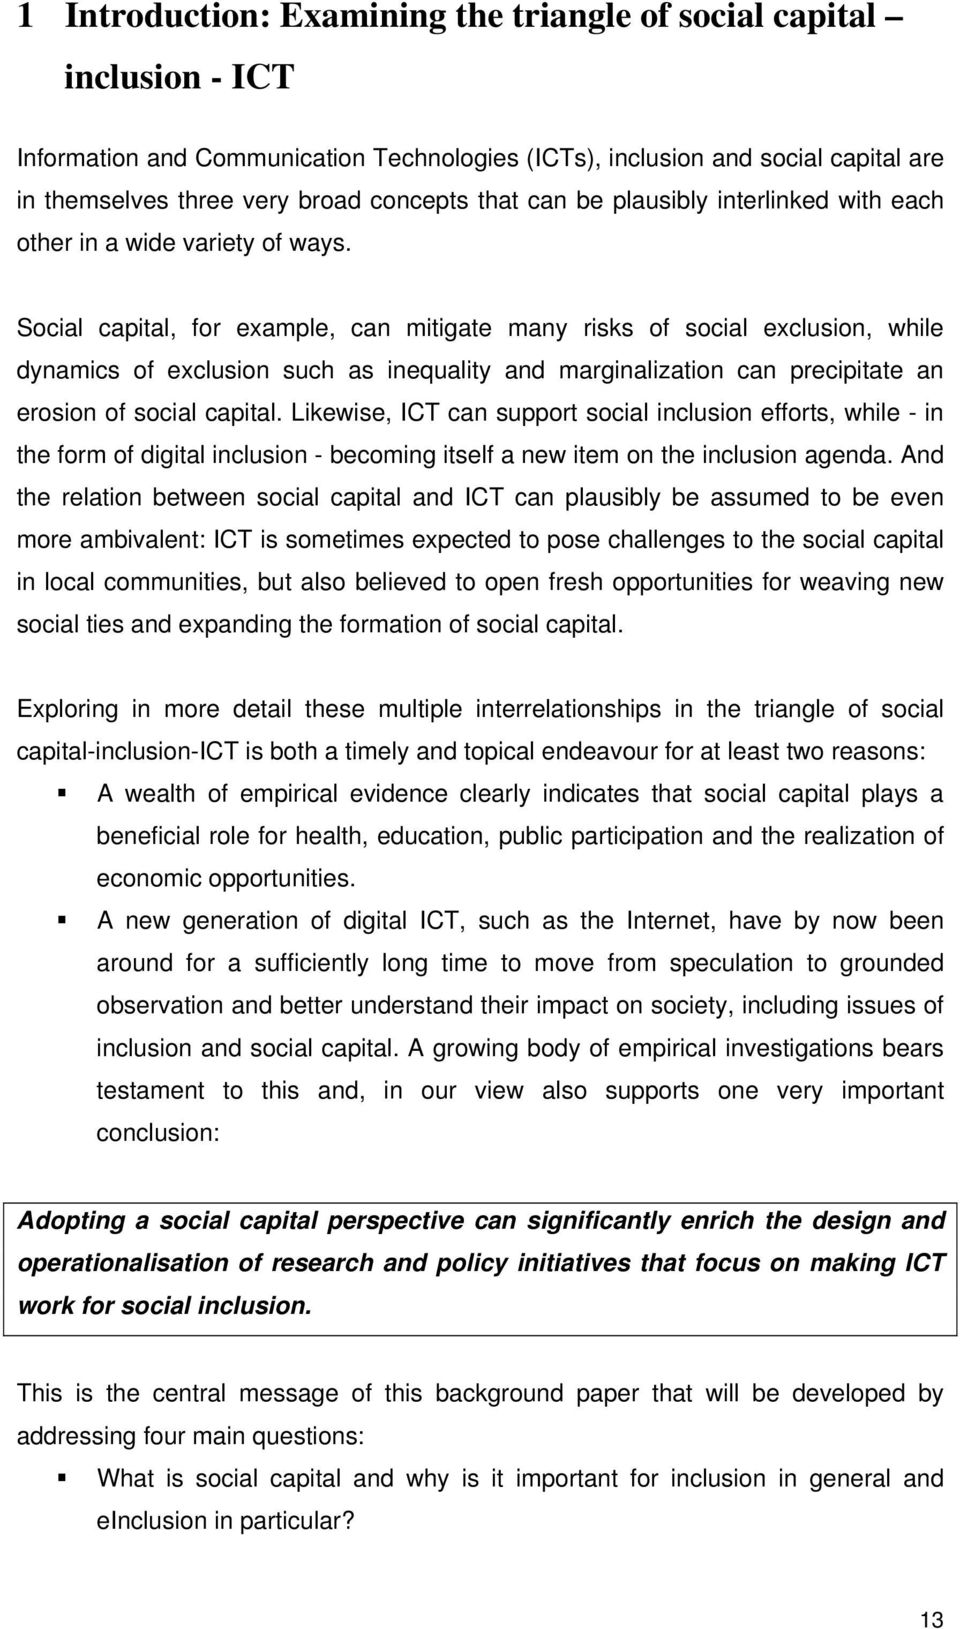 Social capital, for example, can mitigate many risks of social exclusion, while dynamics of exclusion such as inequality and marginalization can precipitate an erosion of social capital.